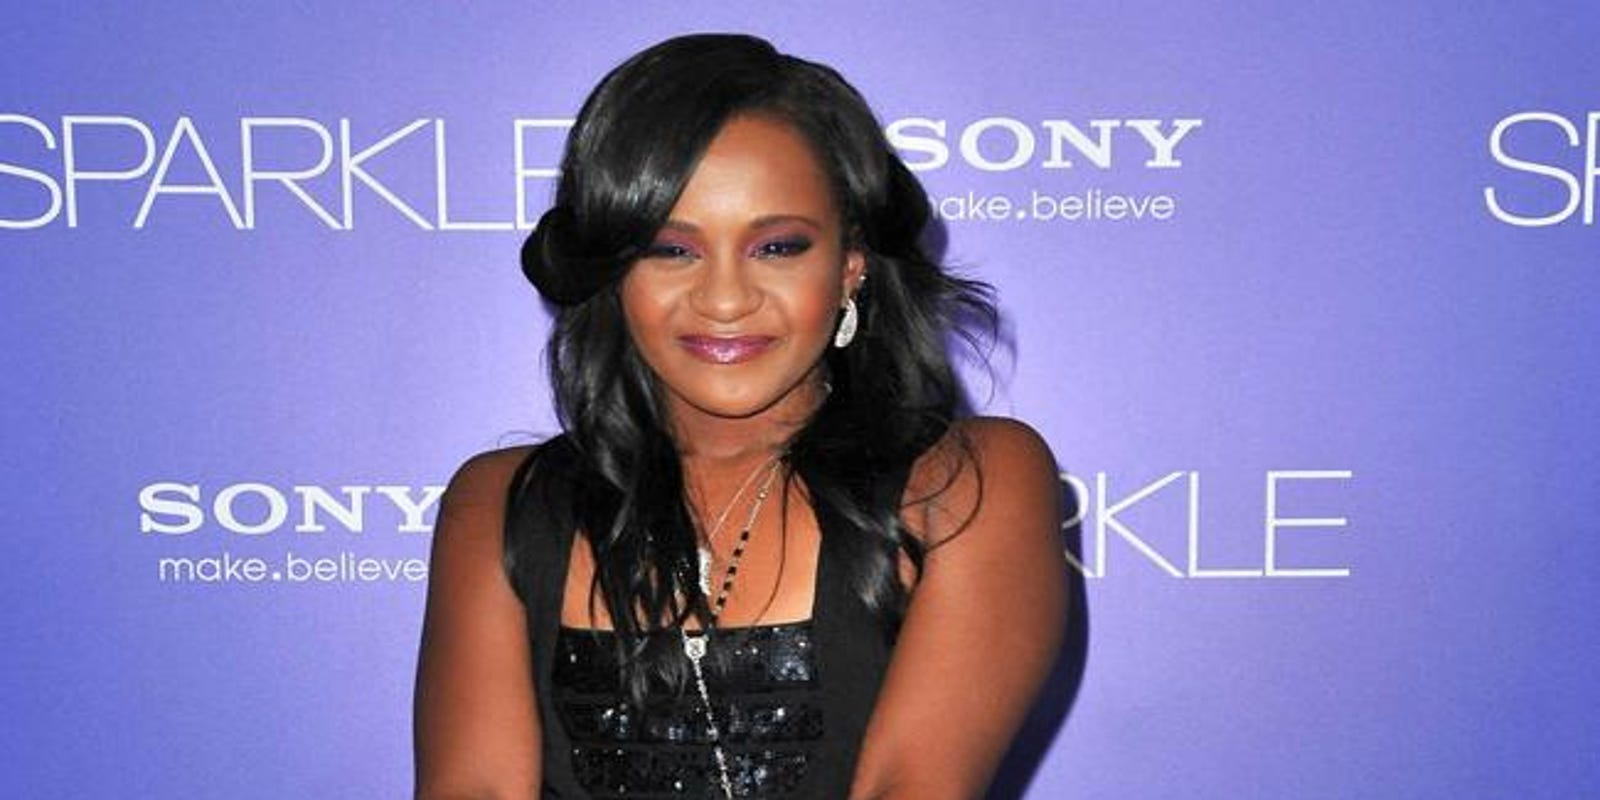 Ana Pastor Nude photo of bobbi kristina brown in casket leaked?